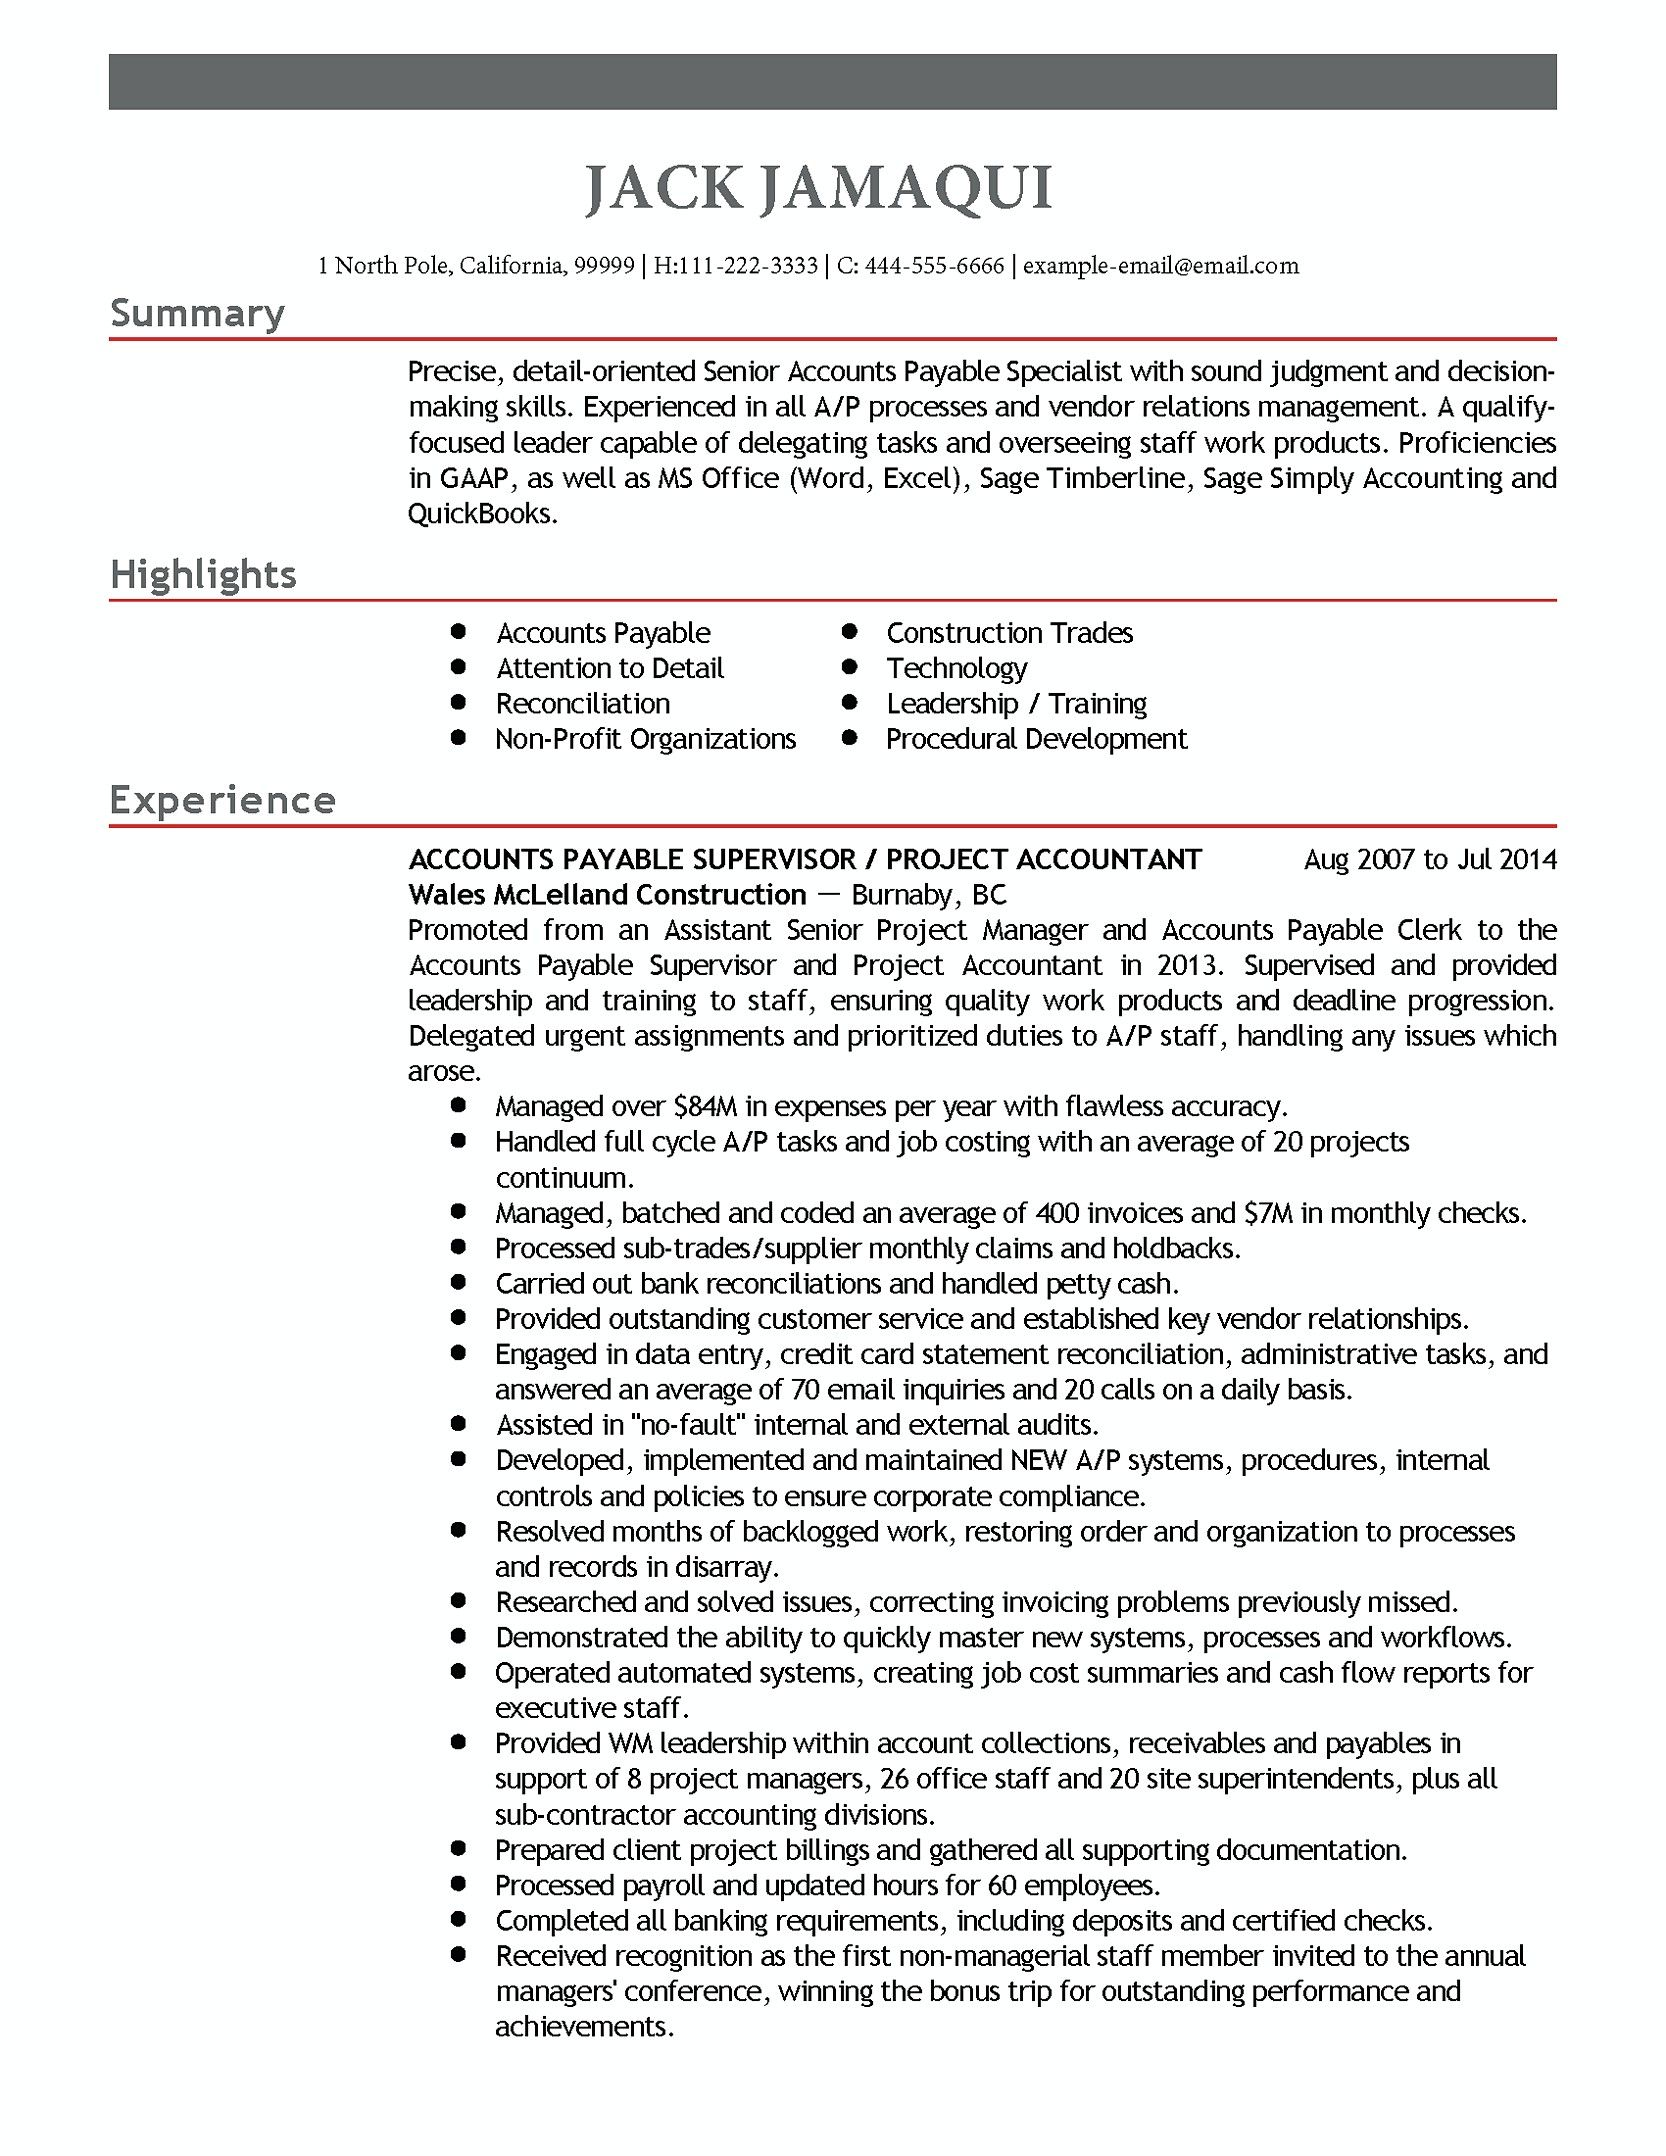 Accounts Payable Manager Resume Are You A Person With Excellent